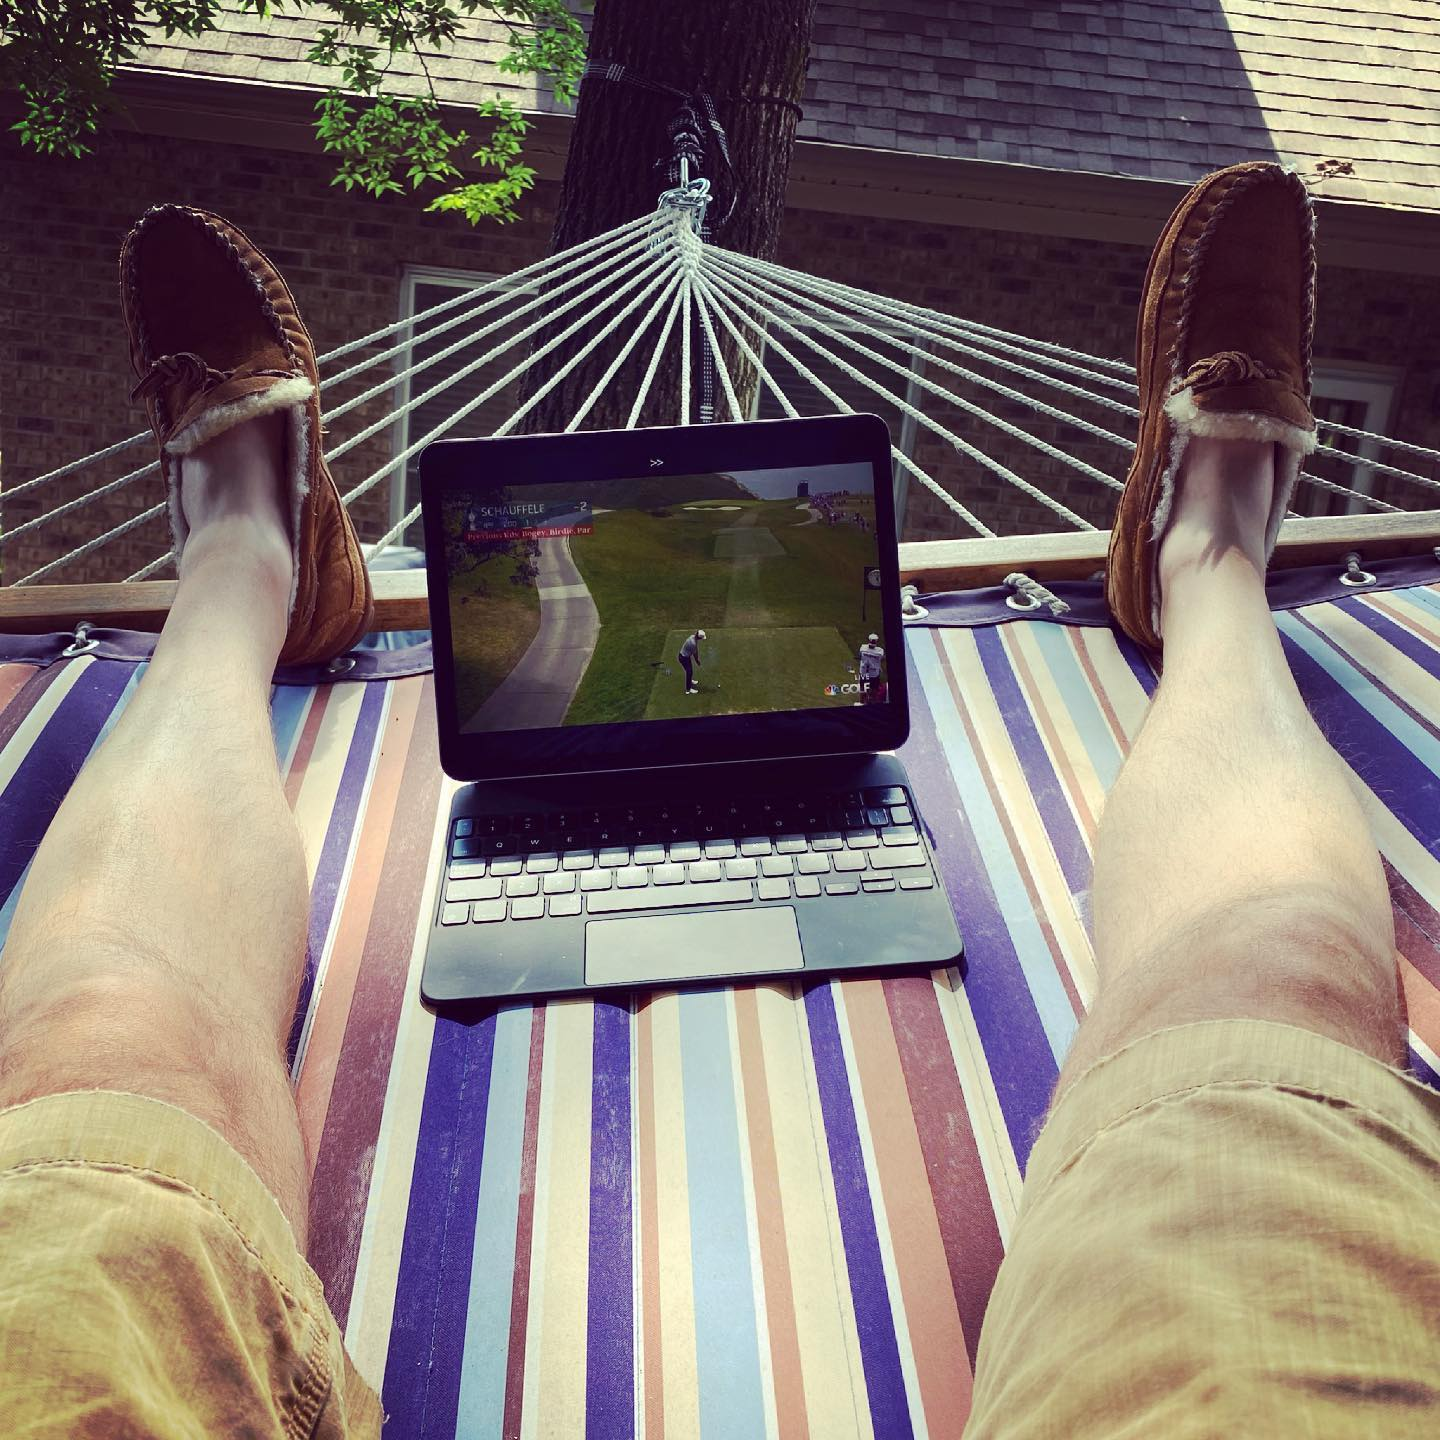 Father's Day afternoon … Hammock + Fuzzy Slippers + U.S. Open. #fathersday #hammock #fuzzyslippers